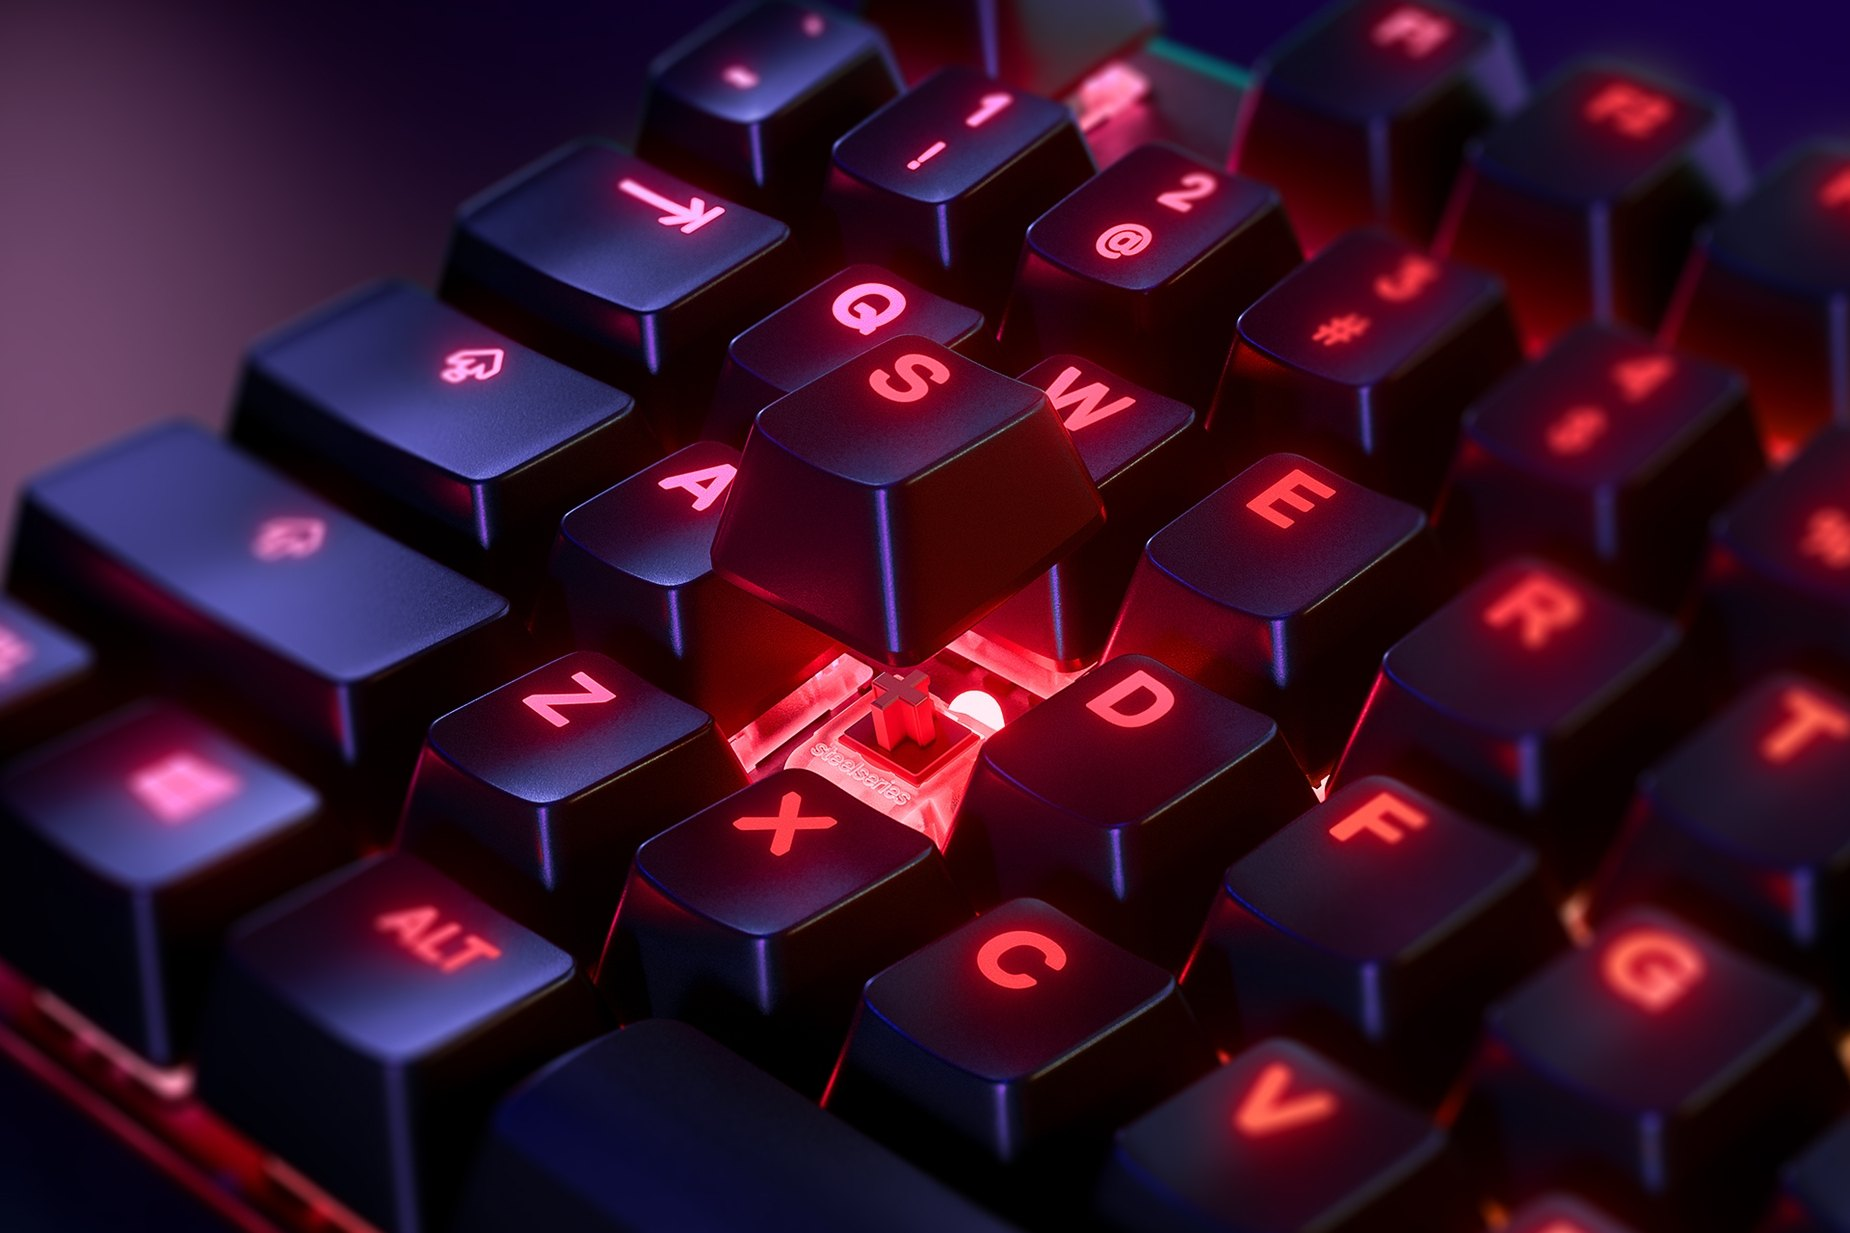 Zoomed in view of a single key on the Nordic-Apex 7 TKL (Red Switch) gaming keyboard, the key is raised up to show the SteelSeries QX2 Mechanical RGB Switch underneath